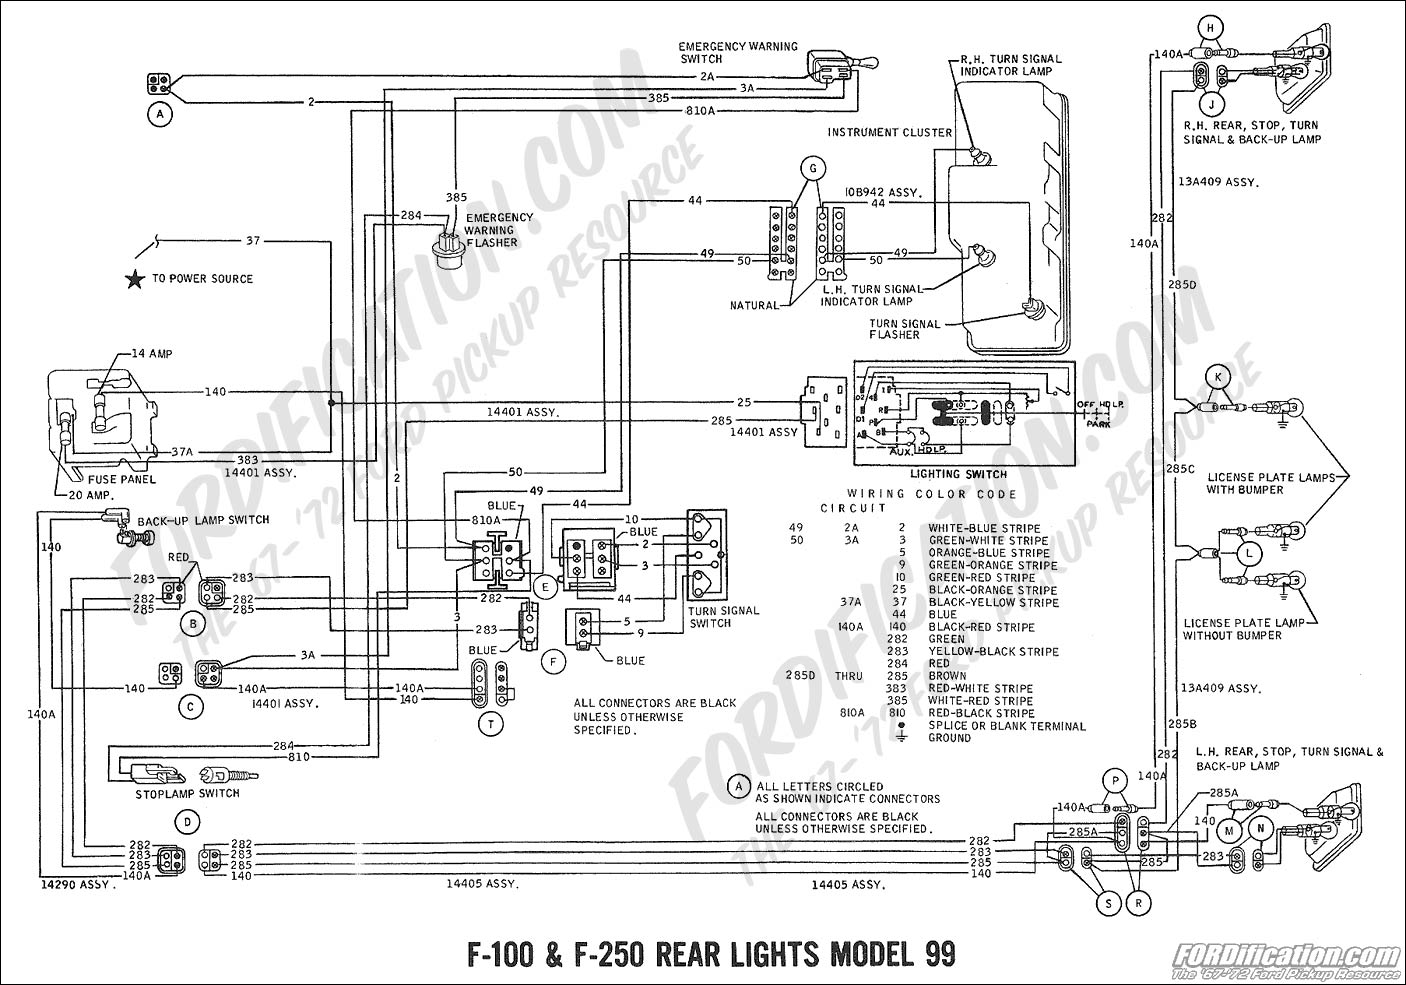 1969 Mustang Fuse Box Picture additionally Ford F 250 Steering Diagram further 787618 Dome Fuse Fuse Box besides Tilt Steering Column For 1955 Ford Truck moreover 687009 Electrical Gremlins Front Running Lights Turn Signals Ammeter Question. on 1971 ford steering column wiring diagram html